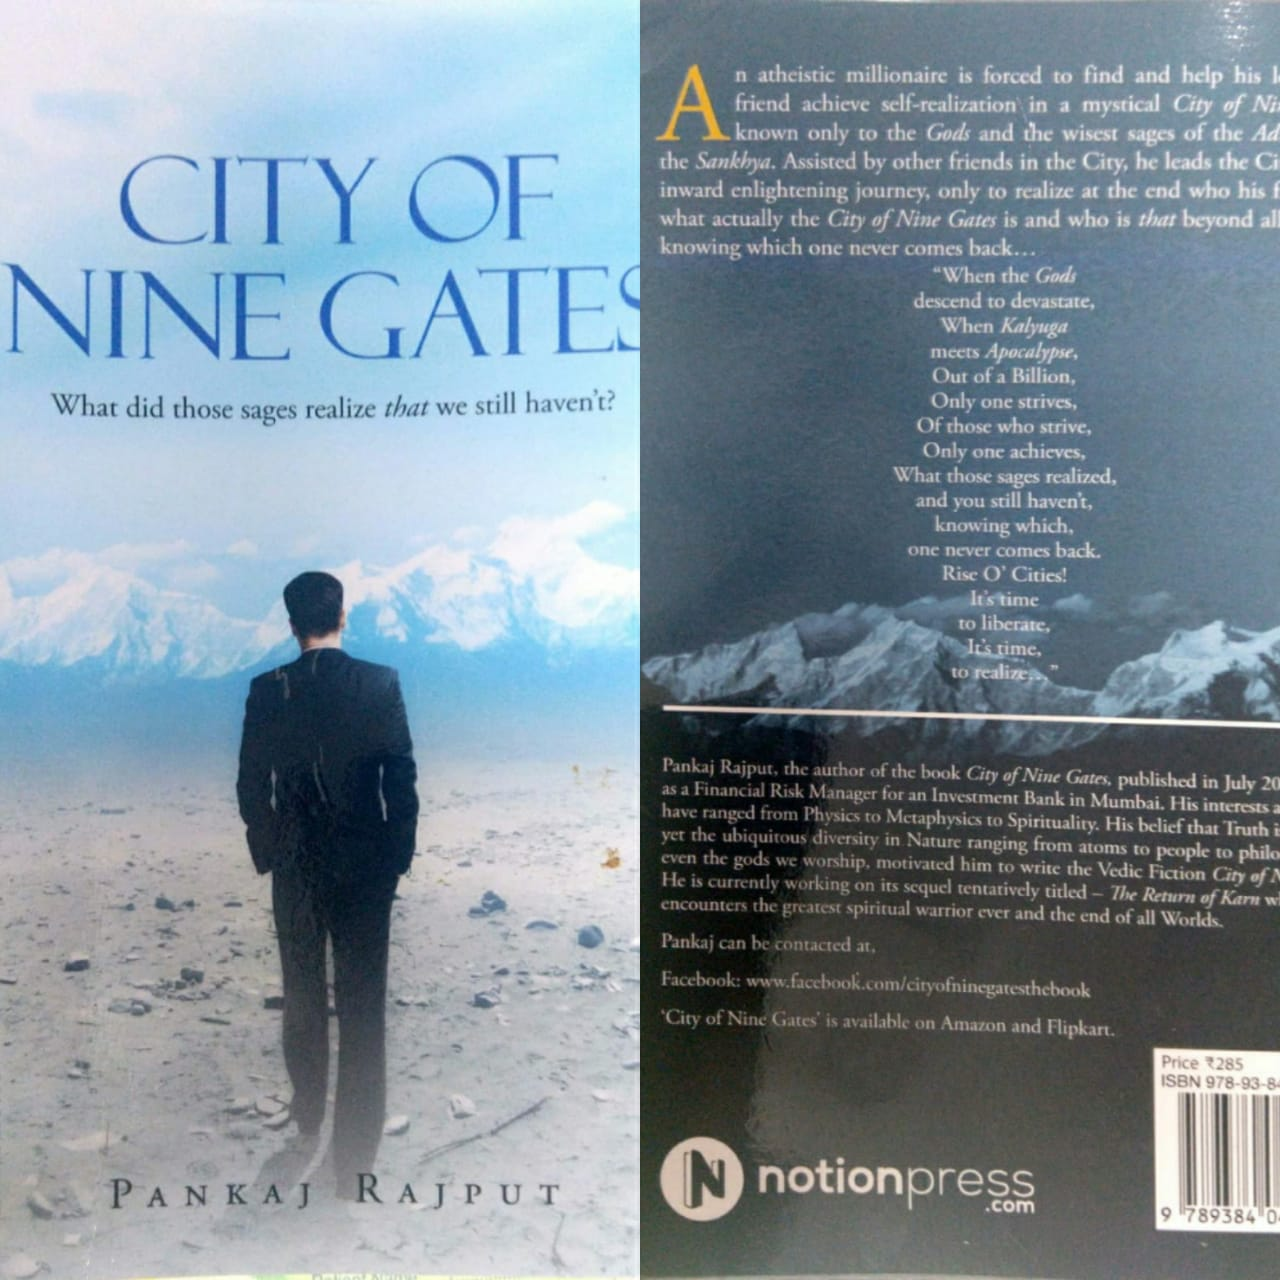 City Of Nine Gates By Pankaj Rajput (Book Review #2)